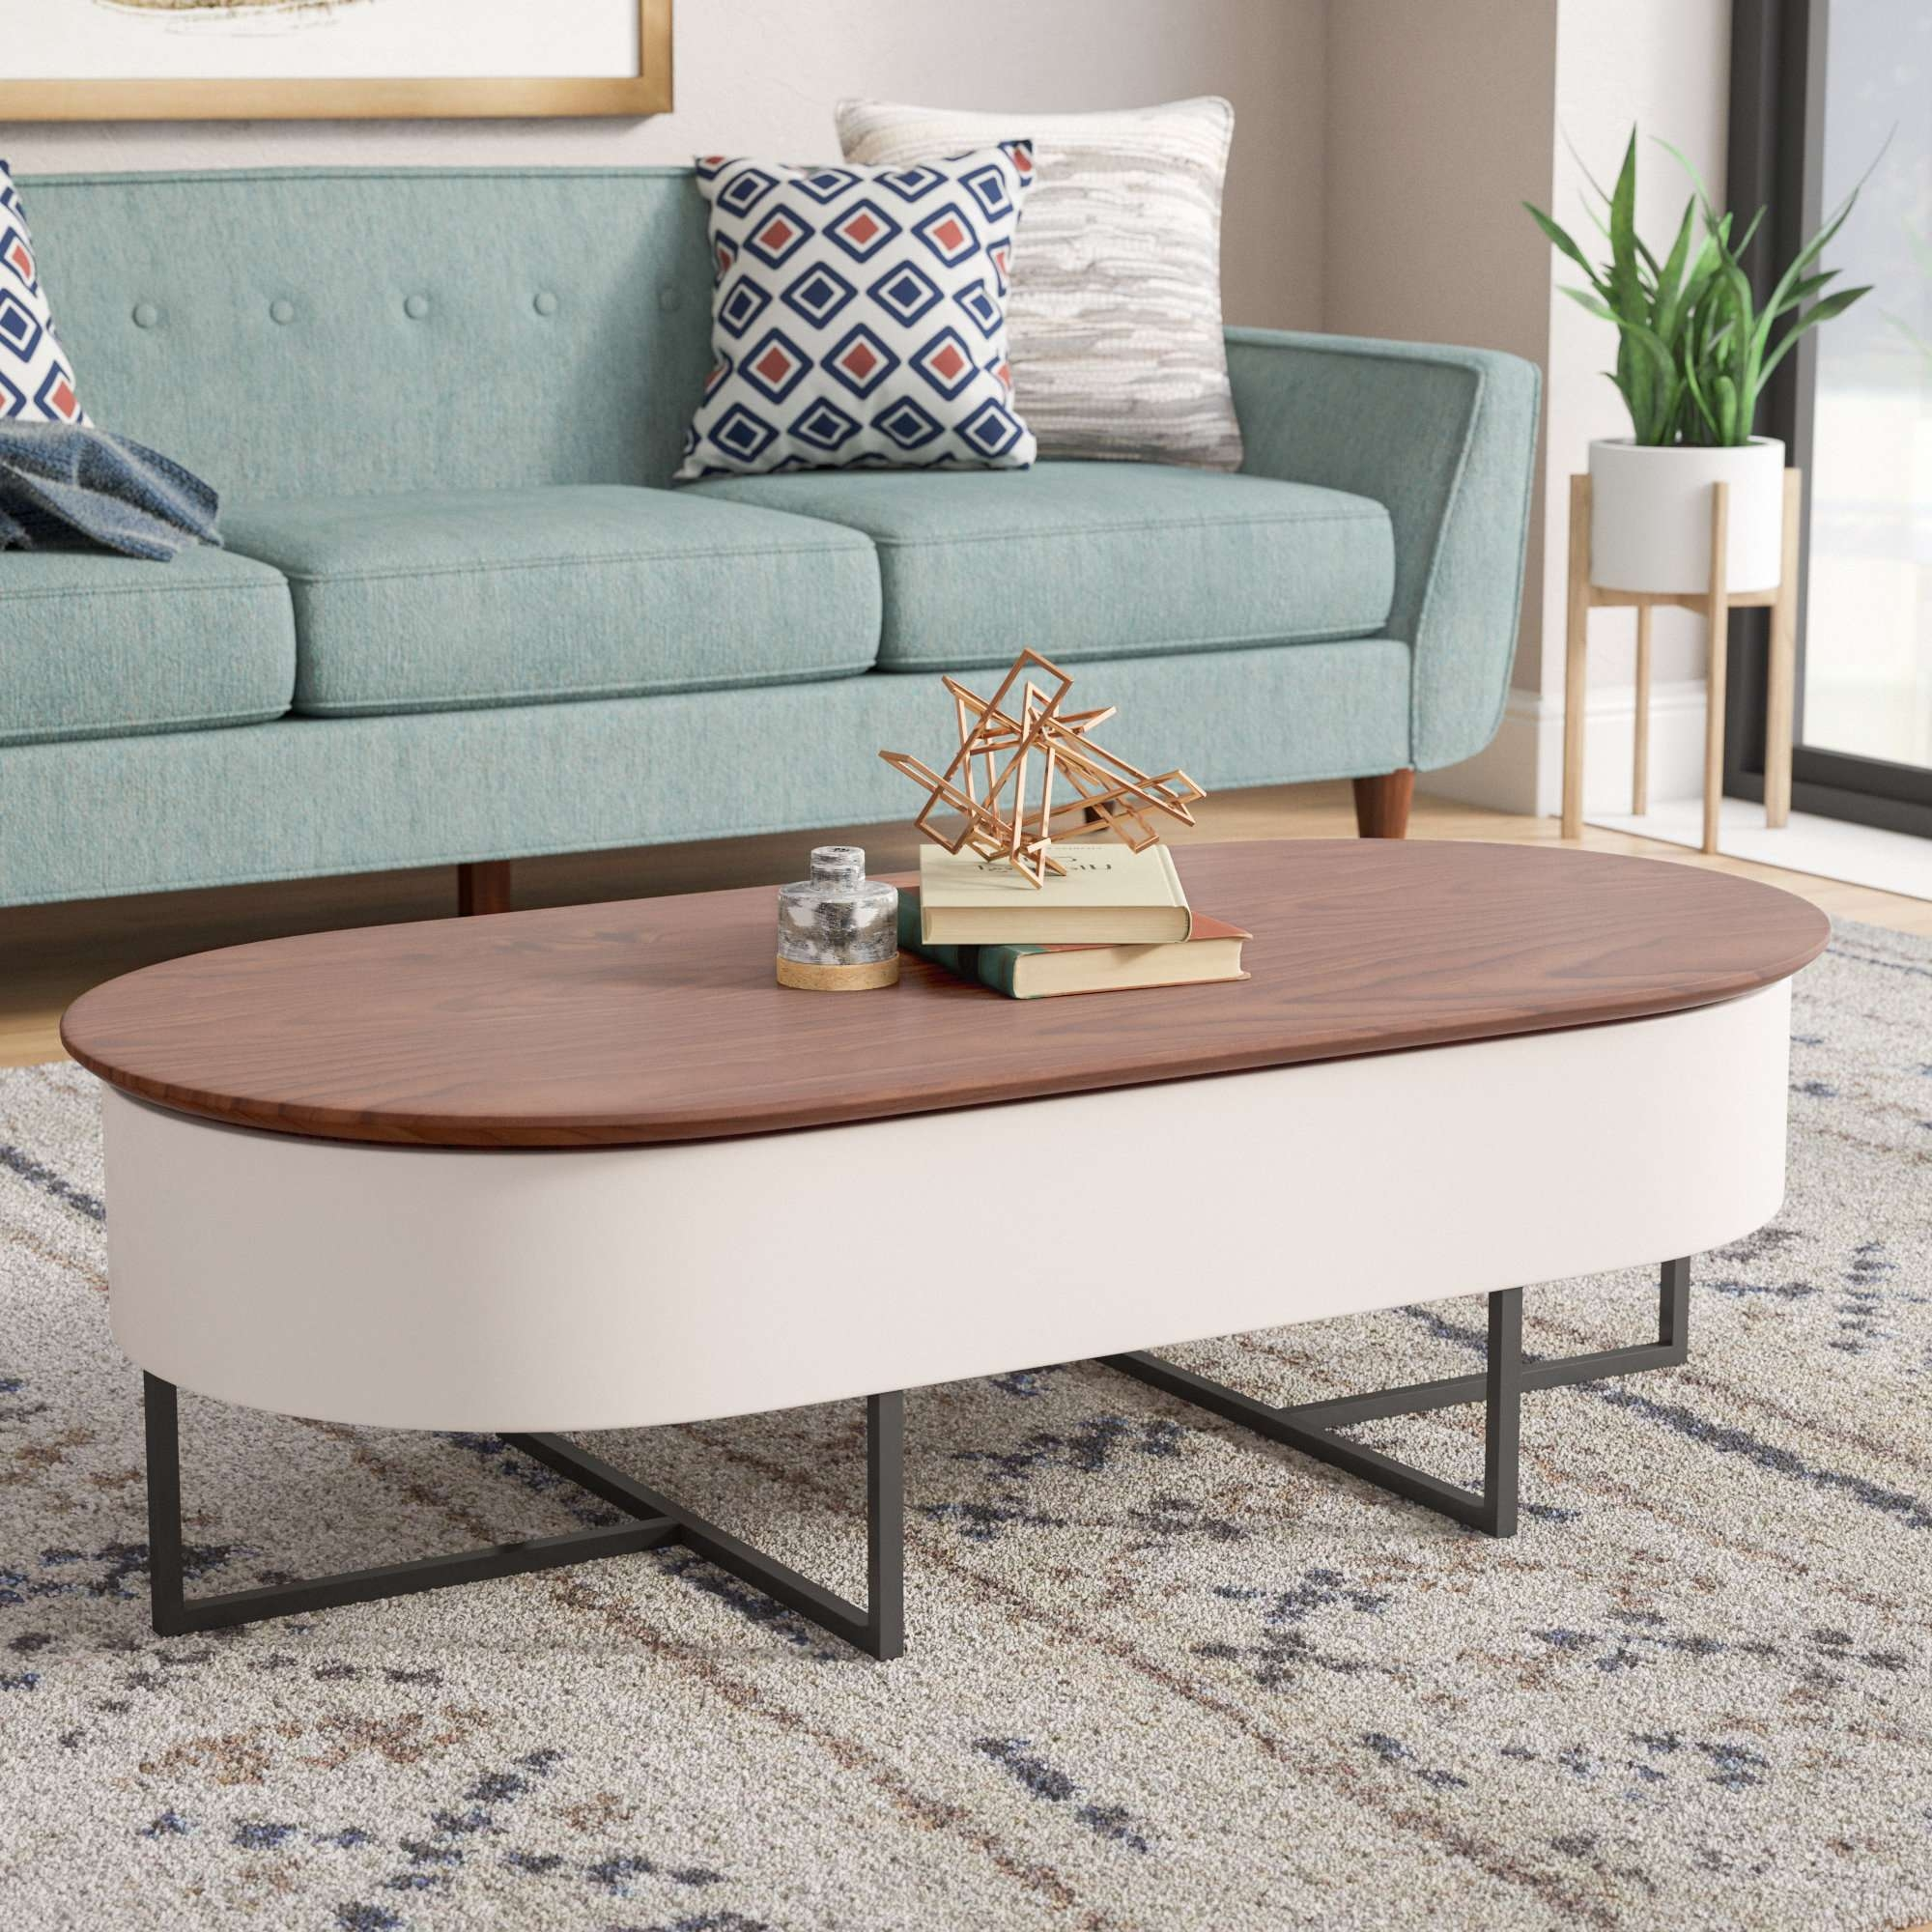 Fullsize Of Lift Up Coffee Table